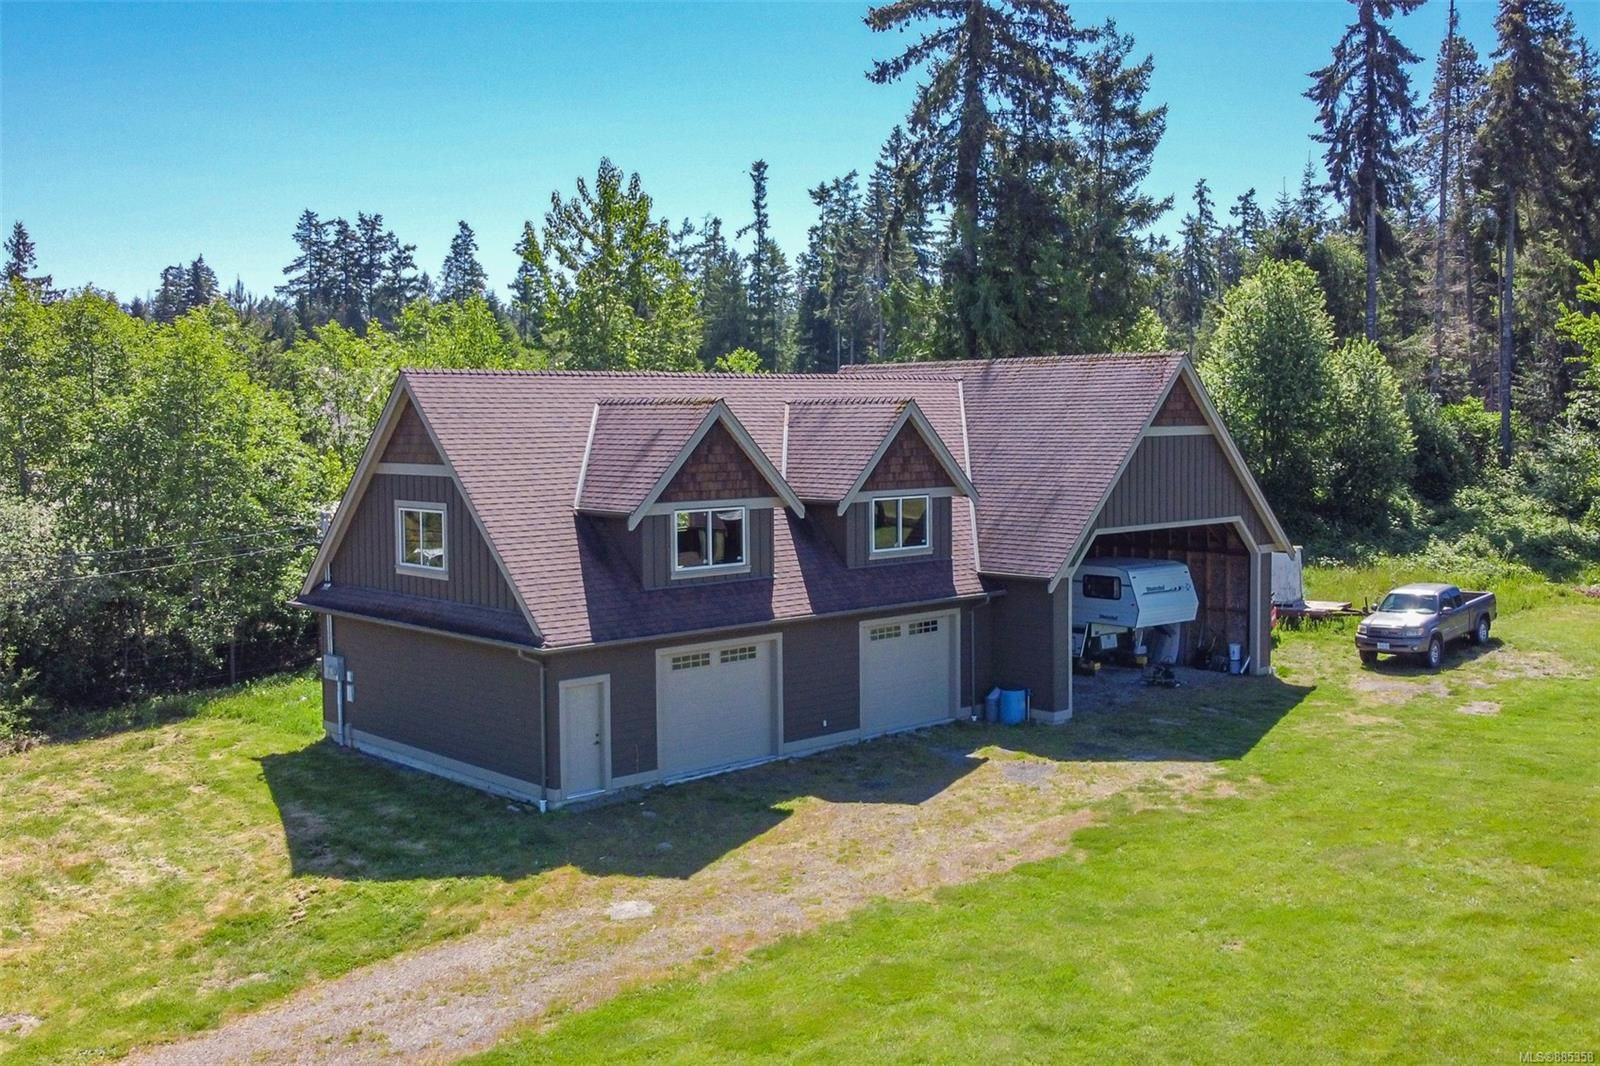 Photo 68: Photos: 2850 Peters Rd in : PQ Qualicum Beach House for sale (Parksville/Qualicum)  : MLS®# 885358